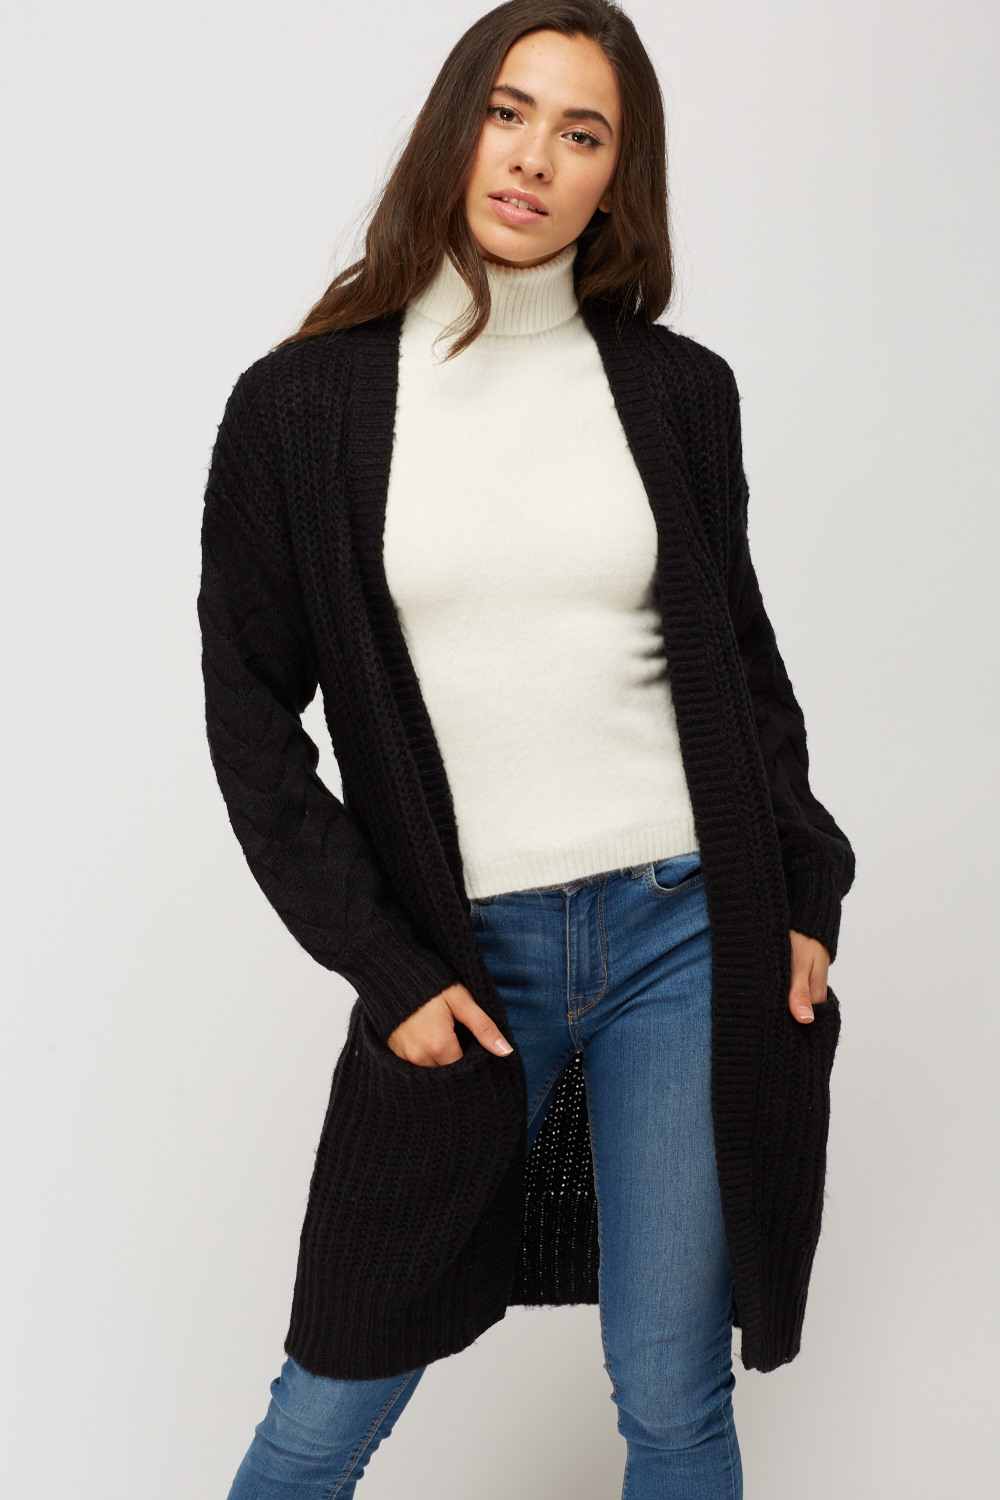 Cable Knit Open Front Cardigan - Black - Just £5